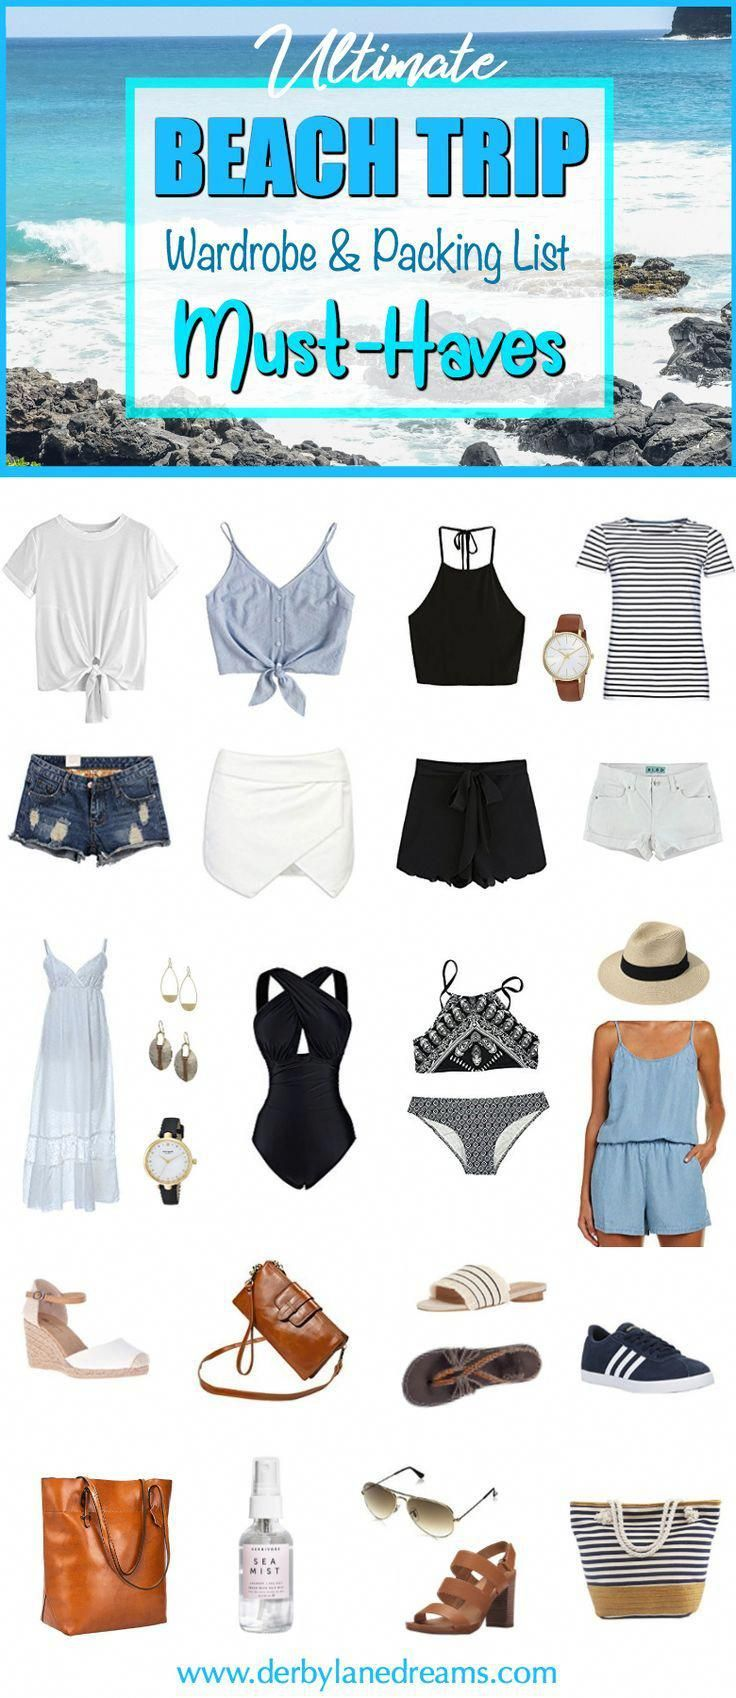 Spring Break Packing List Must-Haves!  This Beach Trip Wardrobe and Packing List…